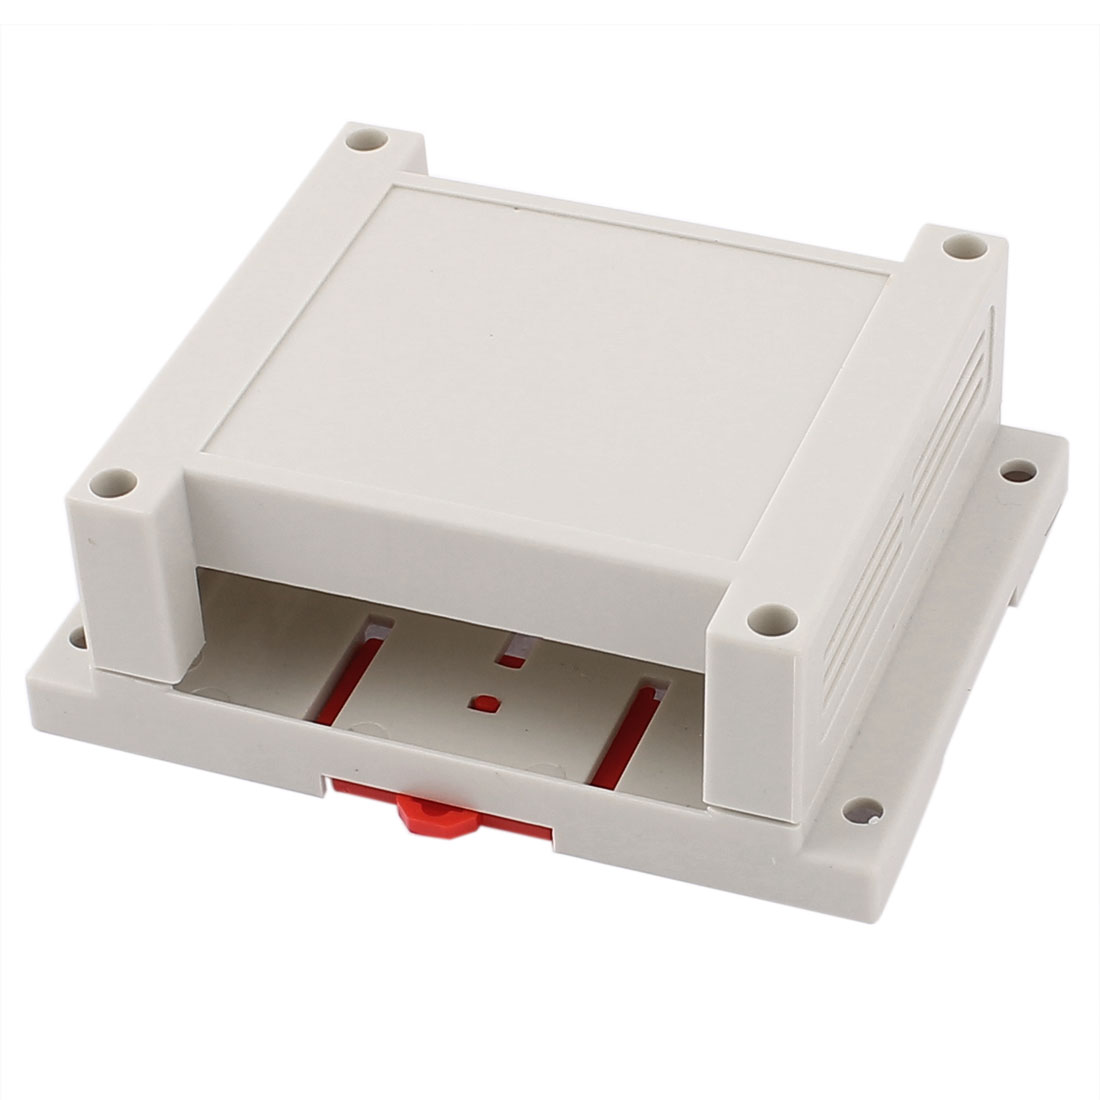 Plastic Electric Terminal Junction Project Box Connector 95x90x40mm